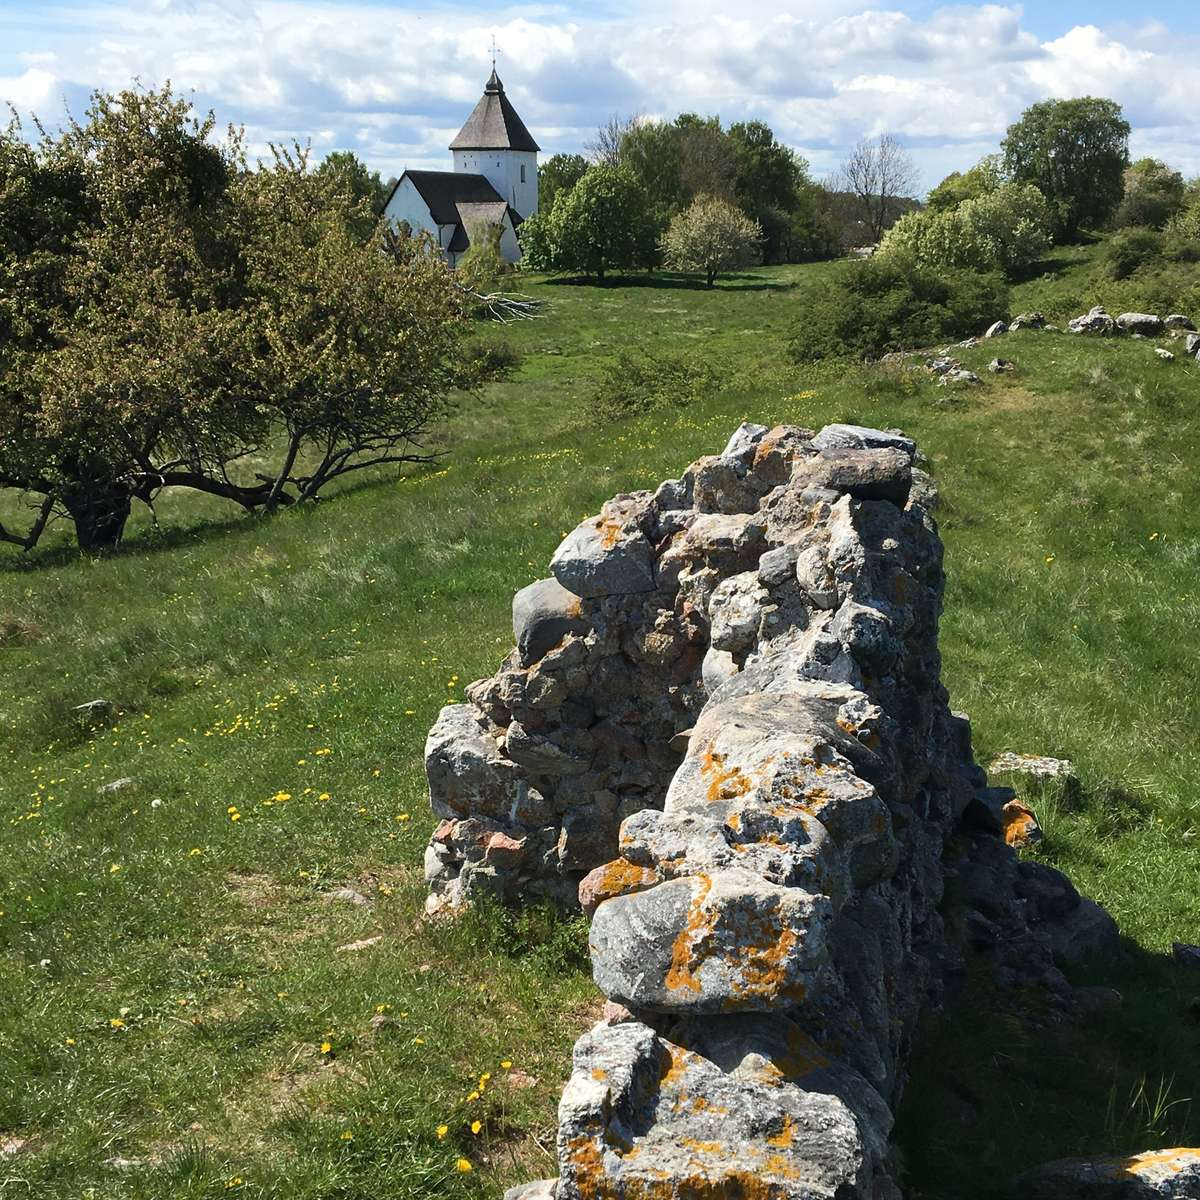 Remnants of the medieval keep